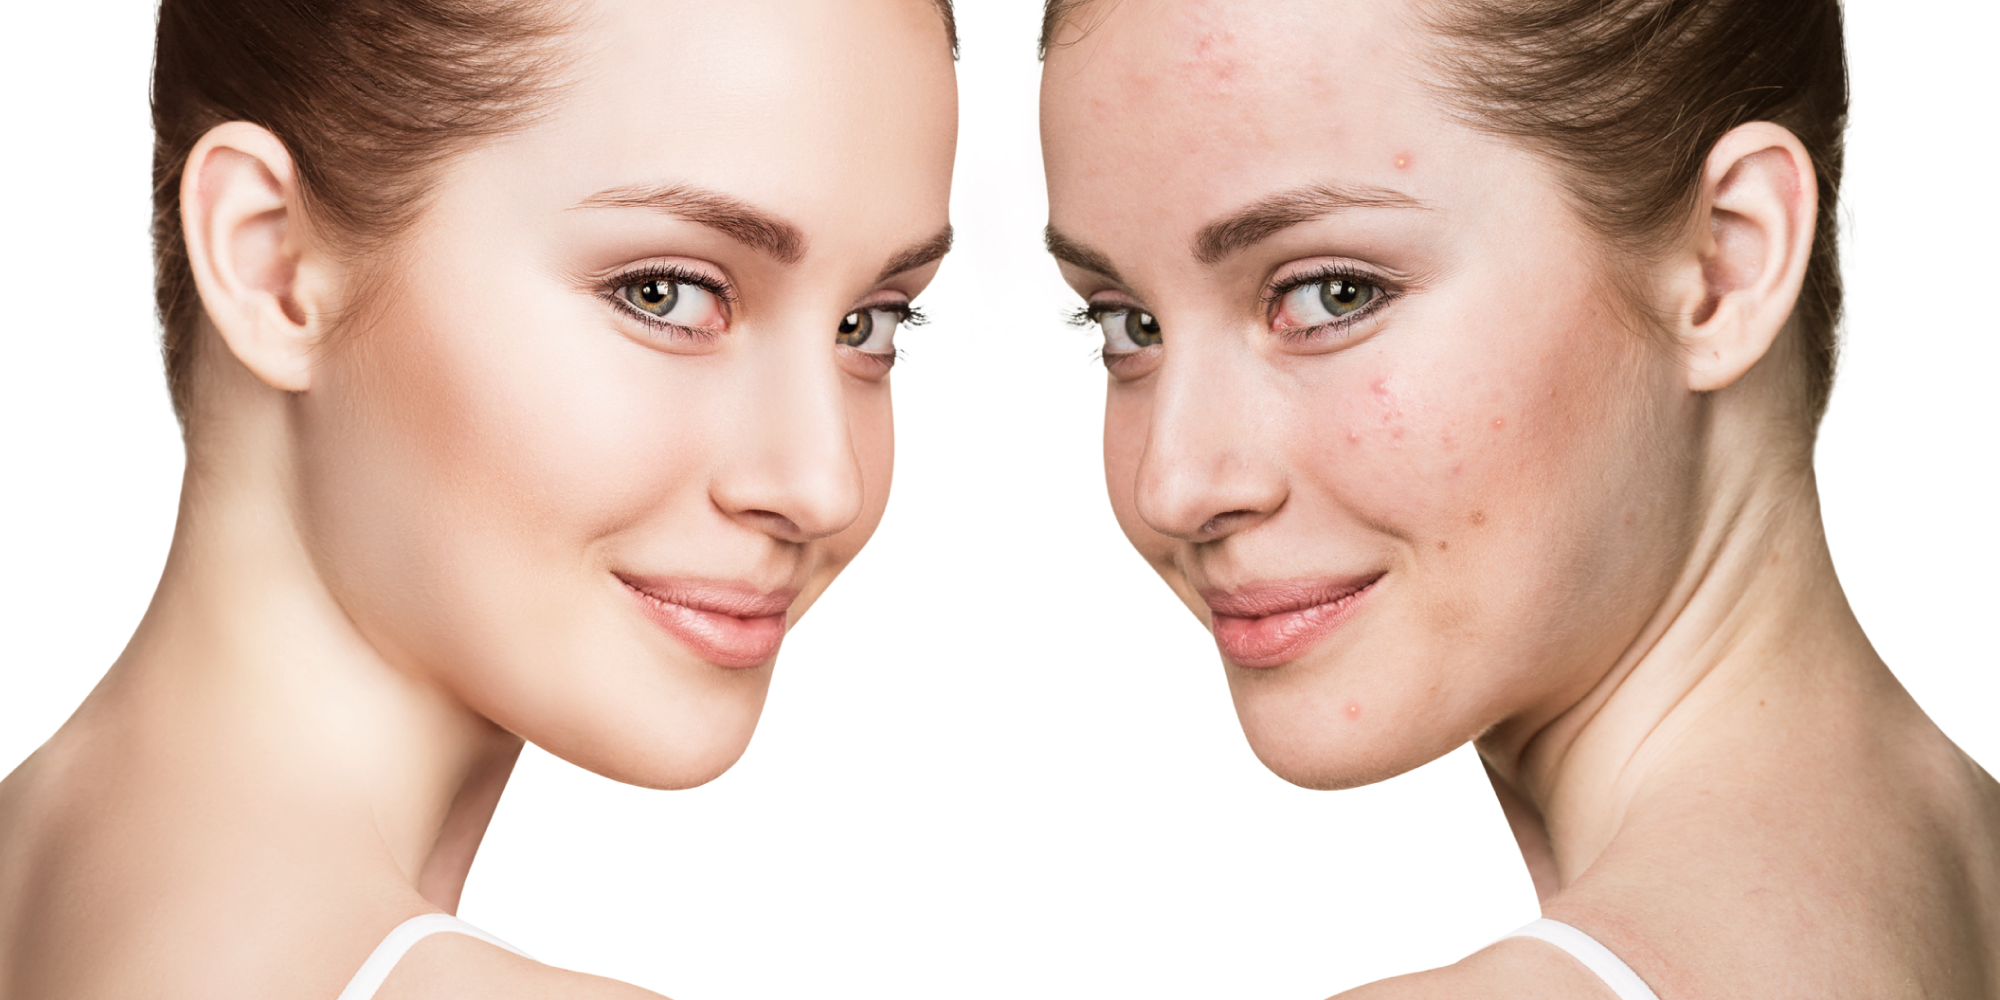 4 Scientifically Proven Forms Of Anti-Androgens That Keep Acne At Bay